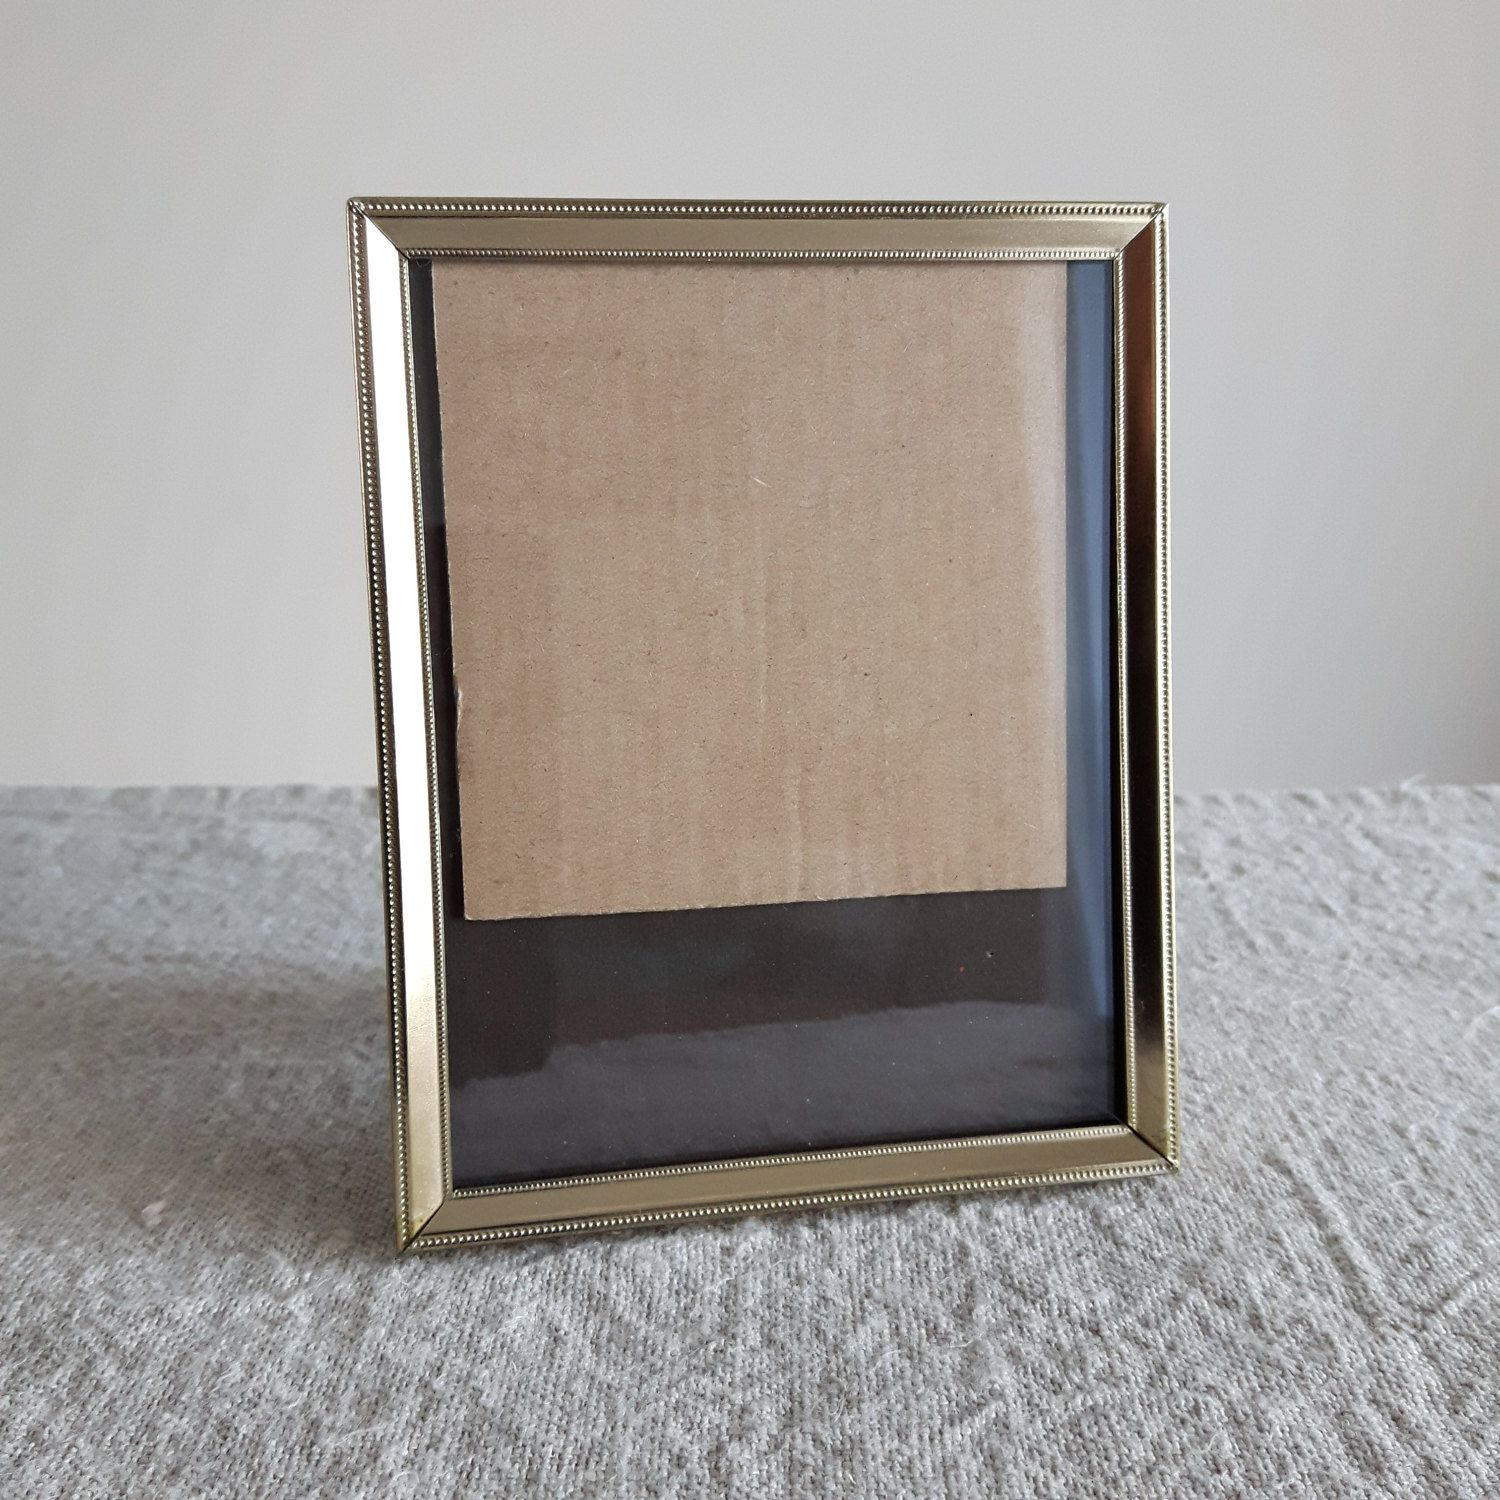 4 x 5 brass gold tone metal picture frame mid century 4 x 5 brass gold tone metal picture frame mid century jeuxipadfo Images